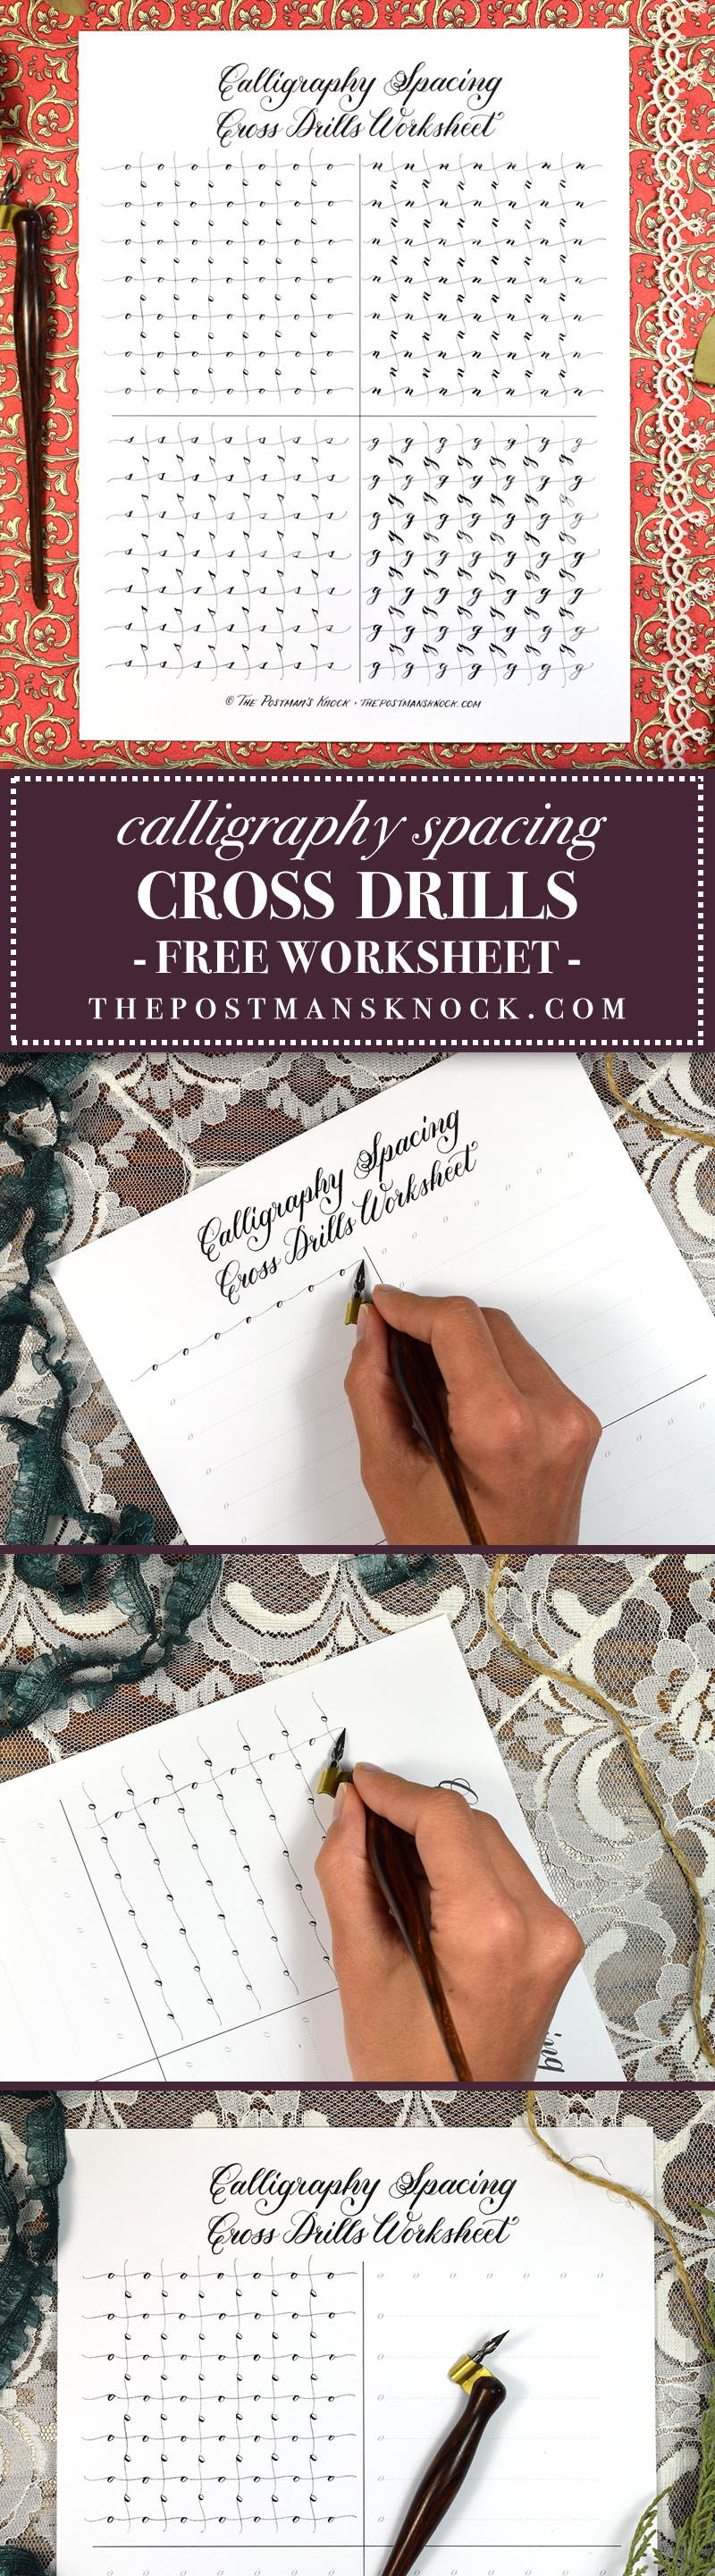 Free Calligraphy Spacing Cross Drills Worksheet